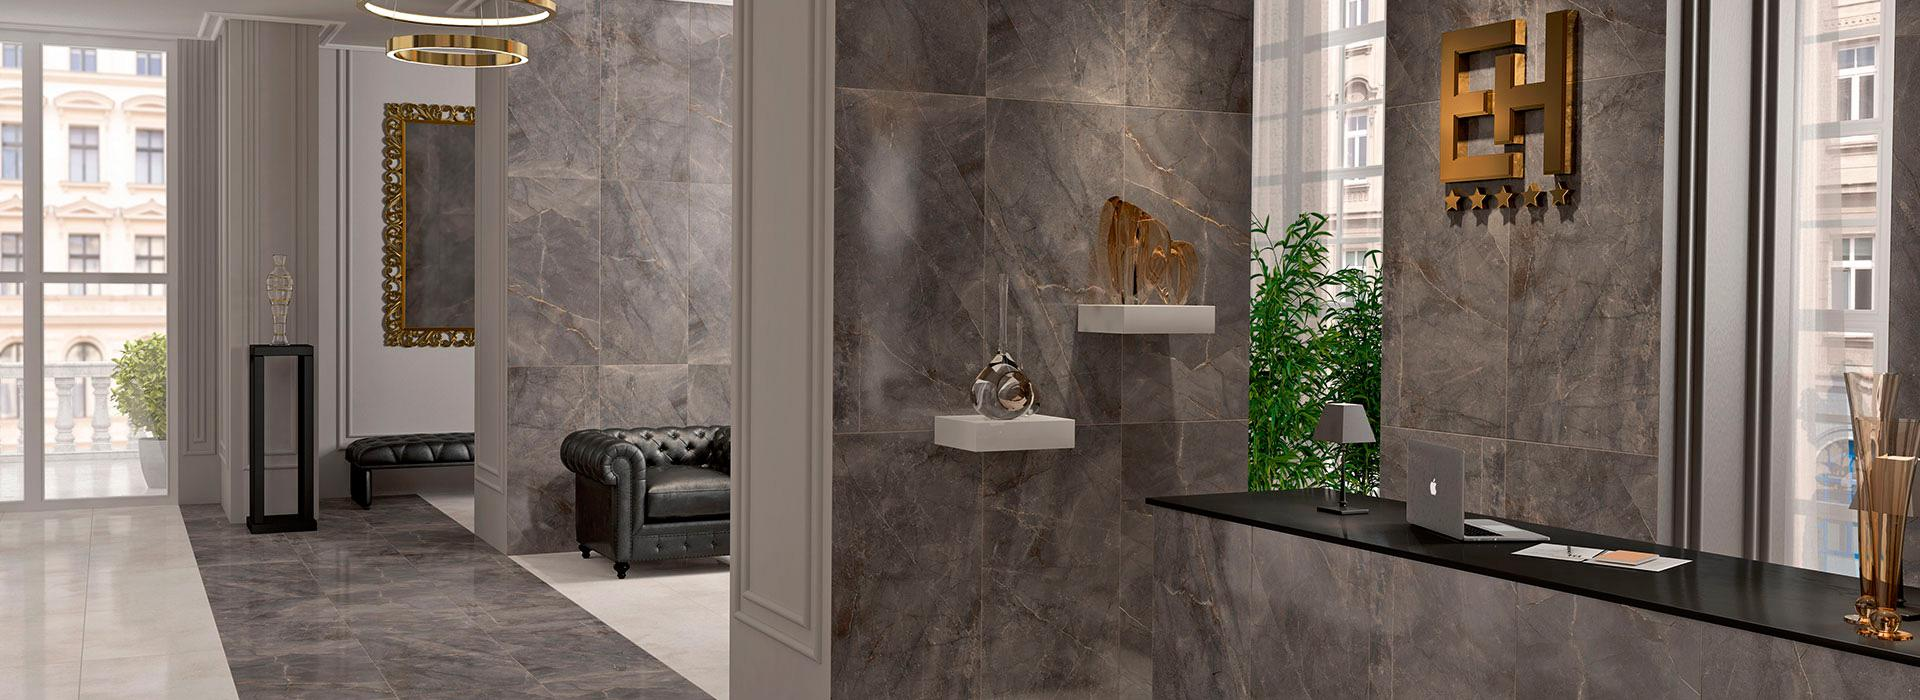 Marble Marble Like Indoor Floor And Wall Tiles Fmg